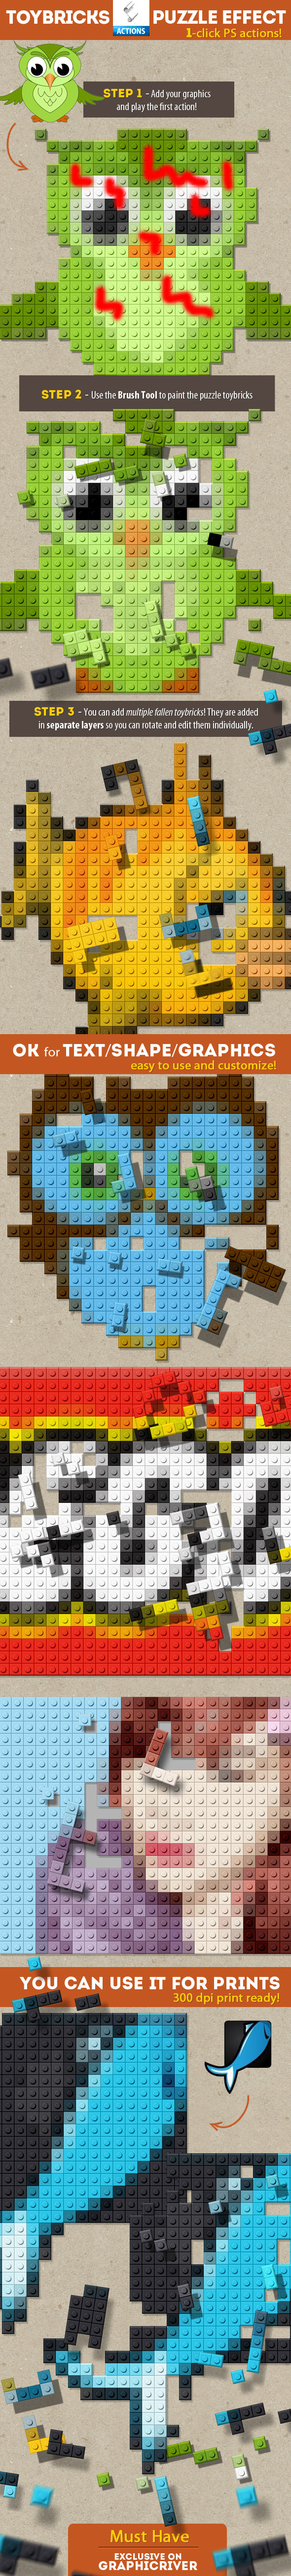 Lego Toy Bricks Puzzle Photoshop Actions - Utilities Actions